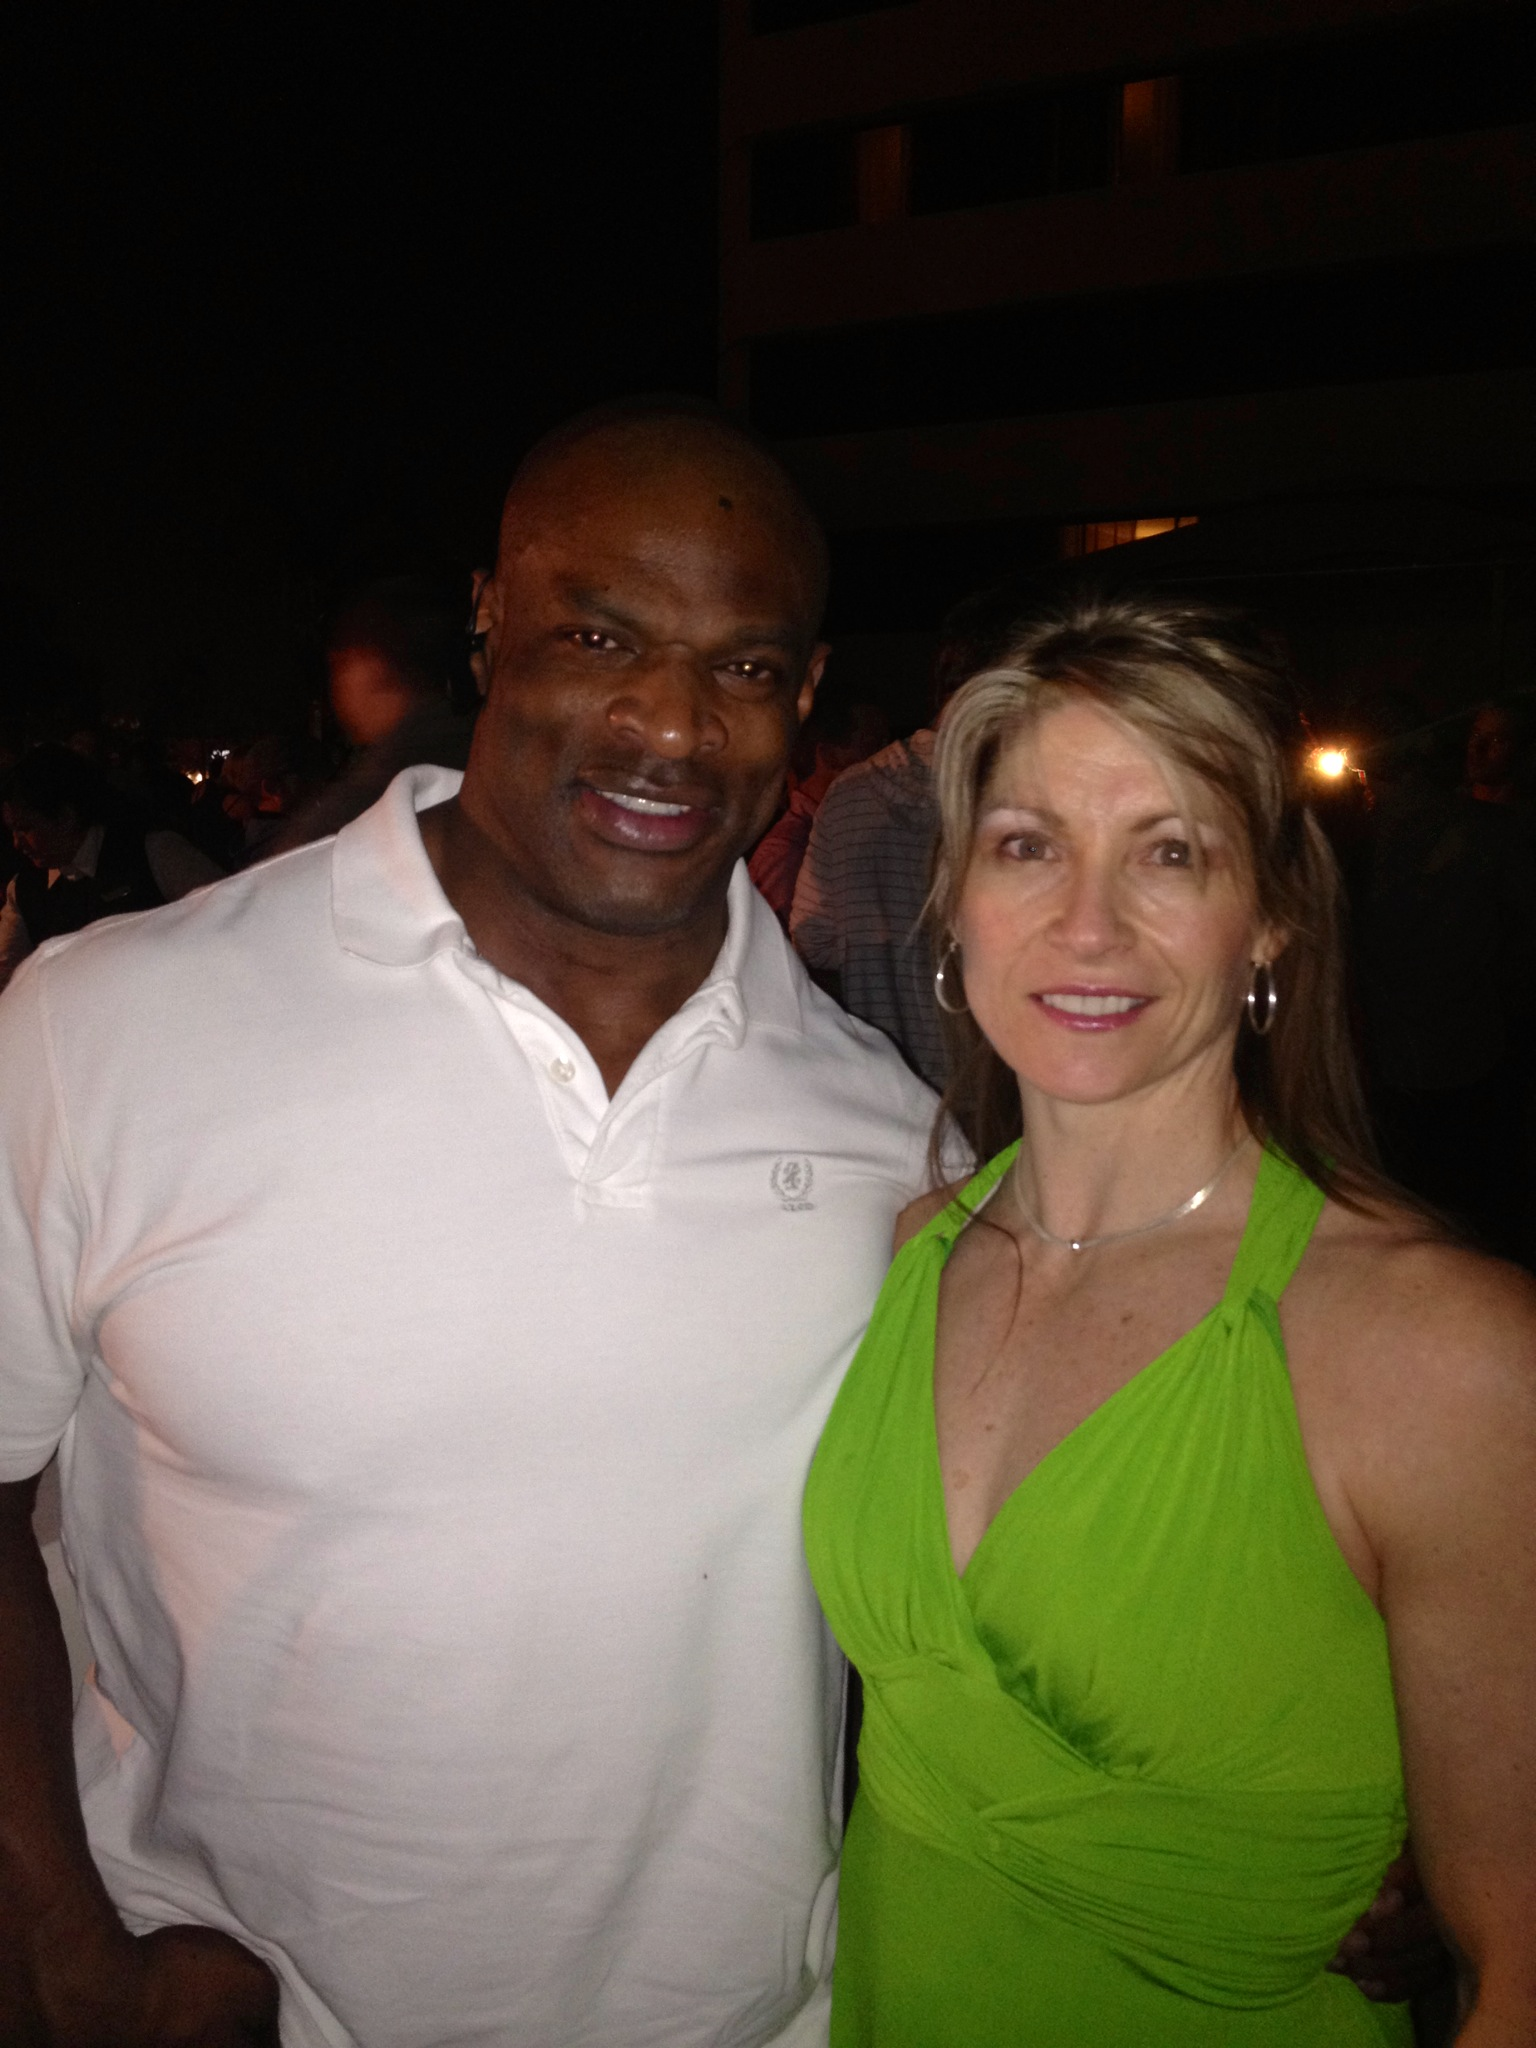 ronnie coleman and me – Fitness, Fatloss Tips and Ideas